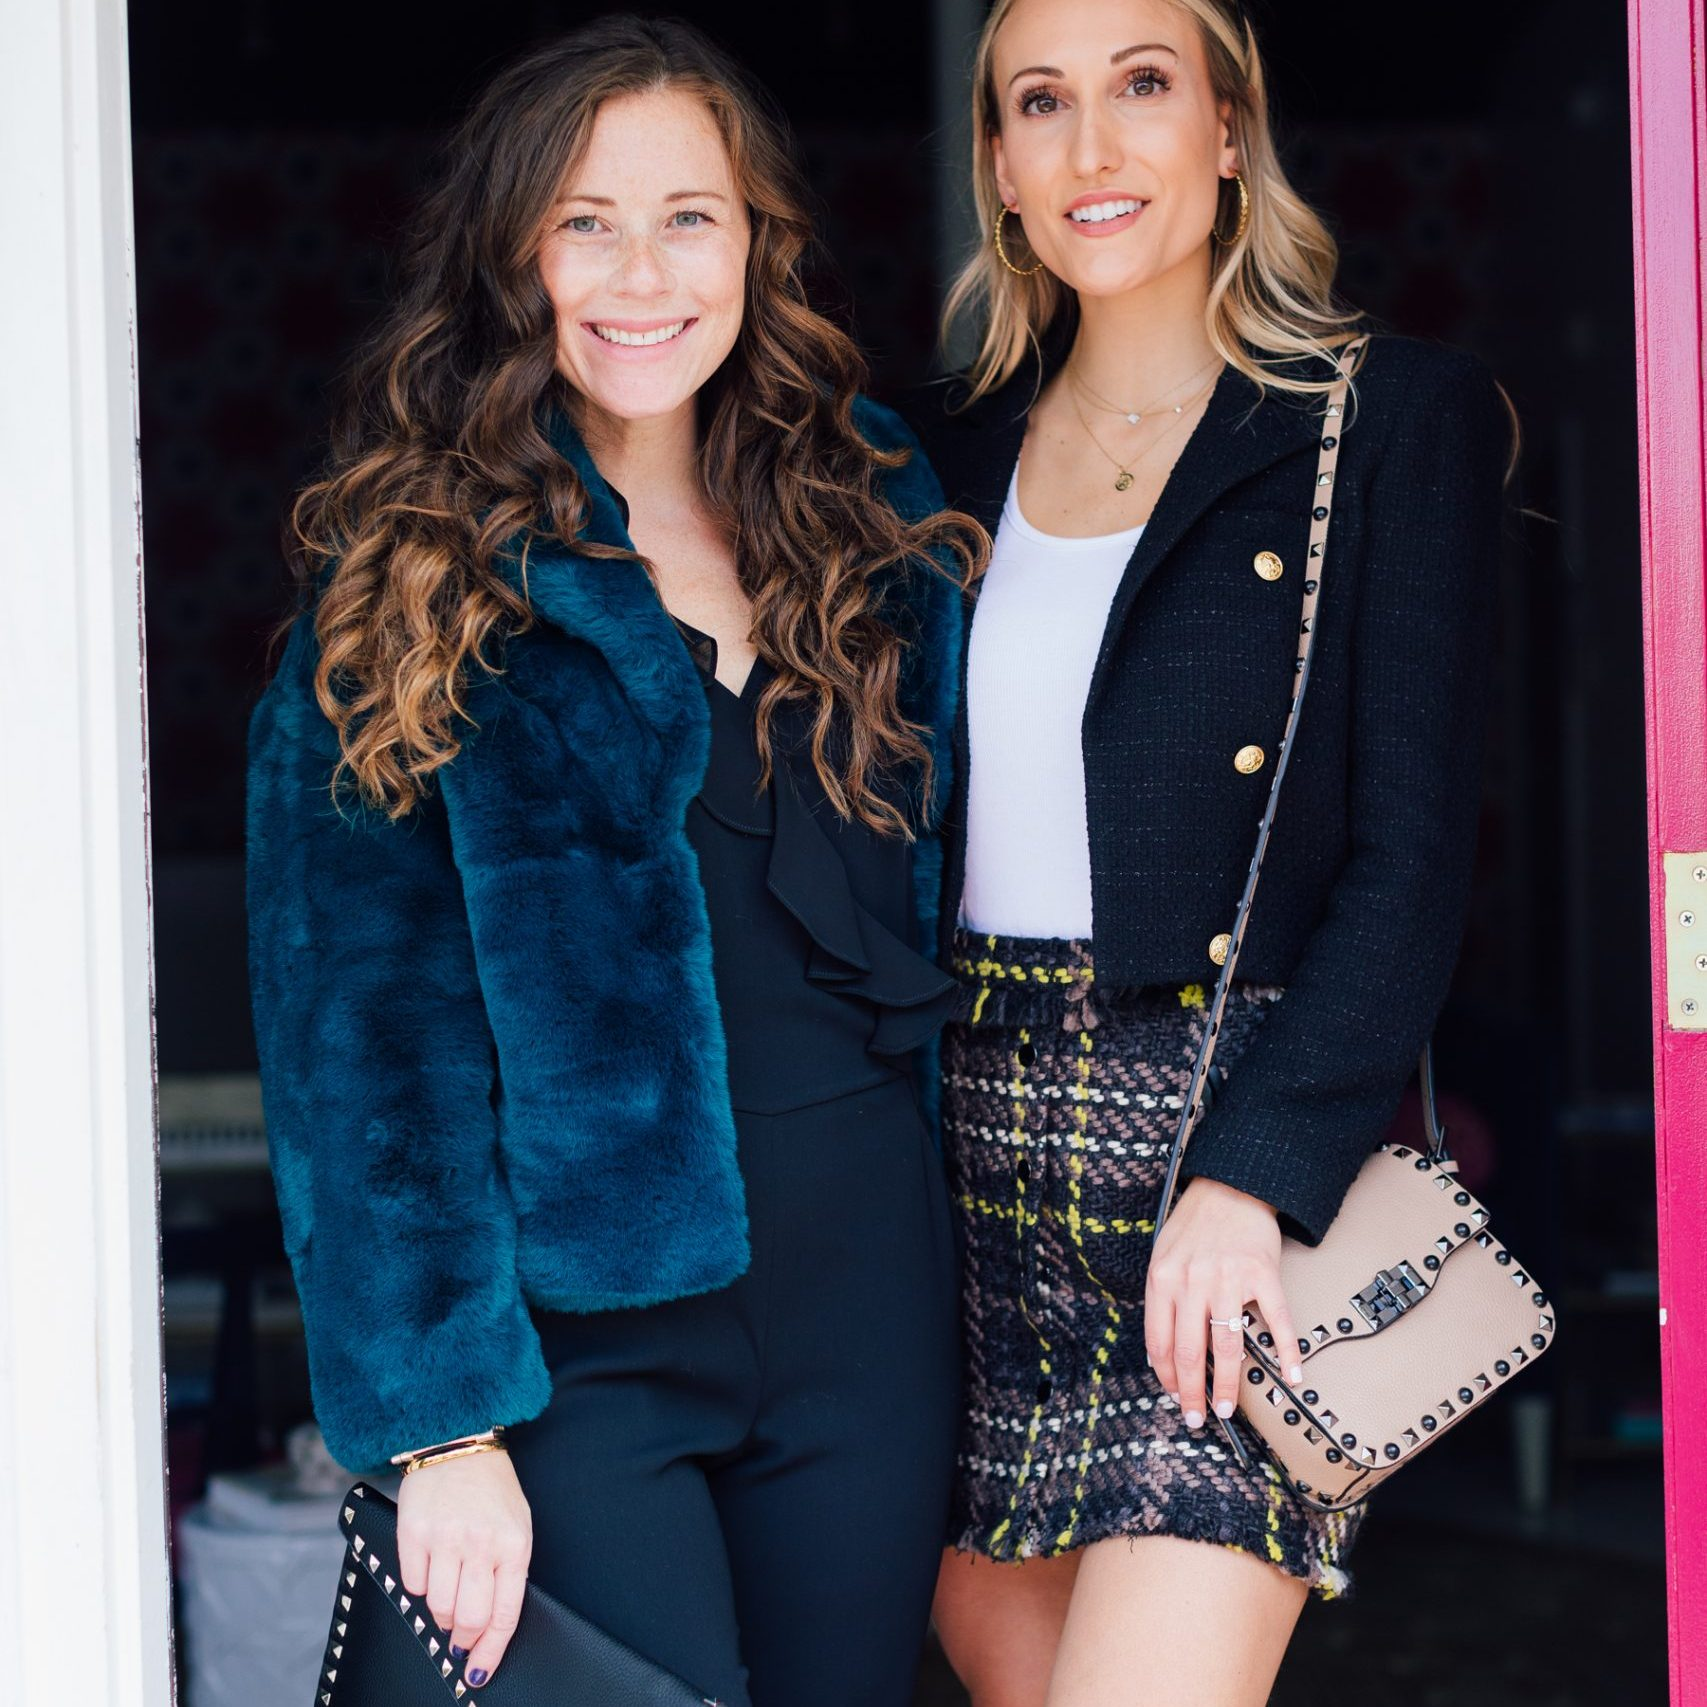 Bloggers in High Fashion in Doorway